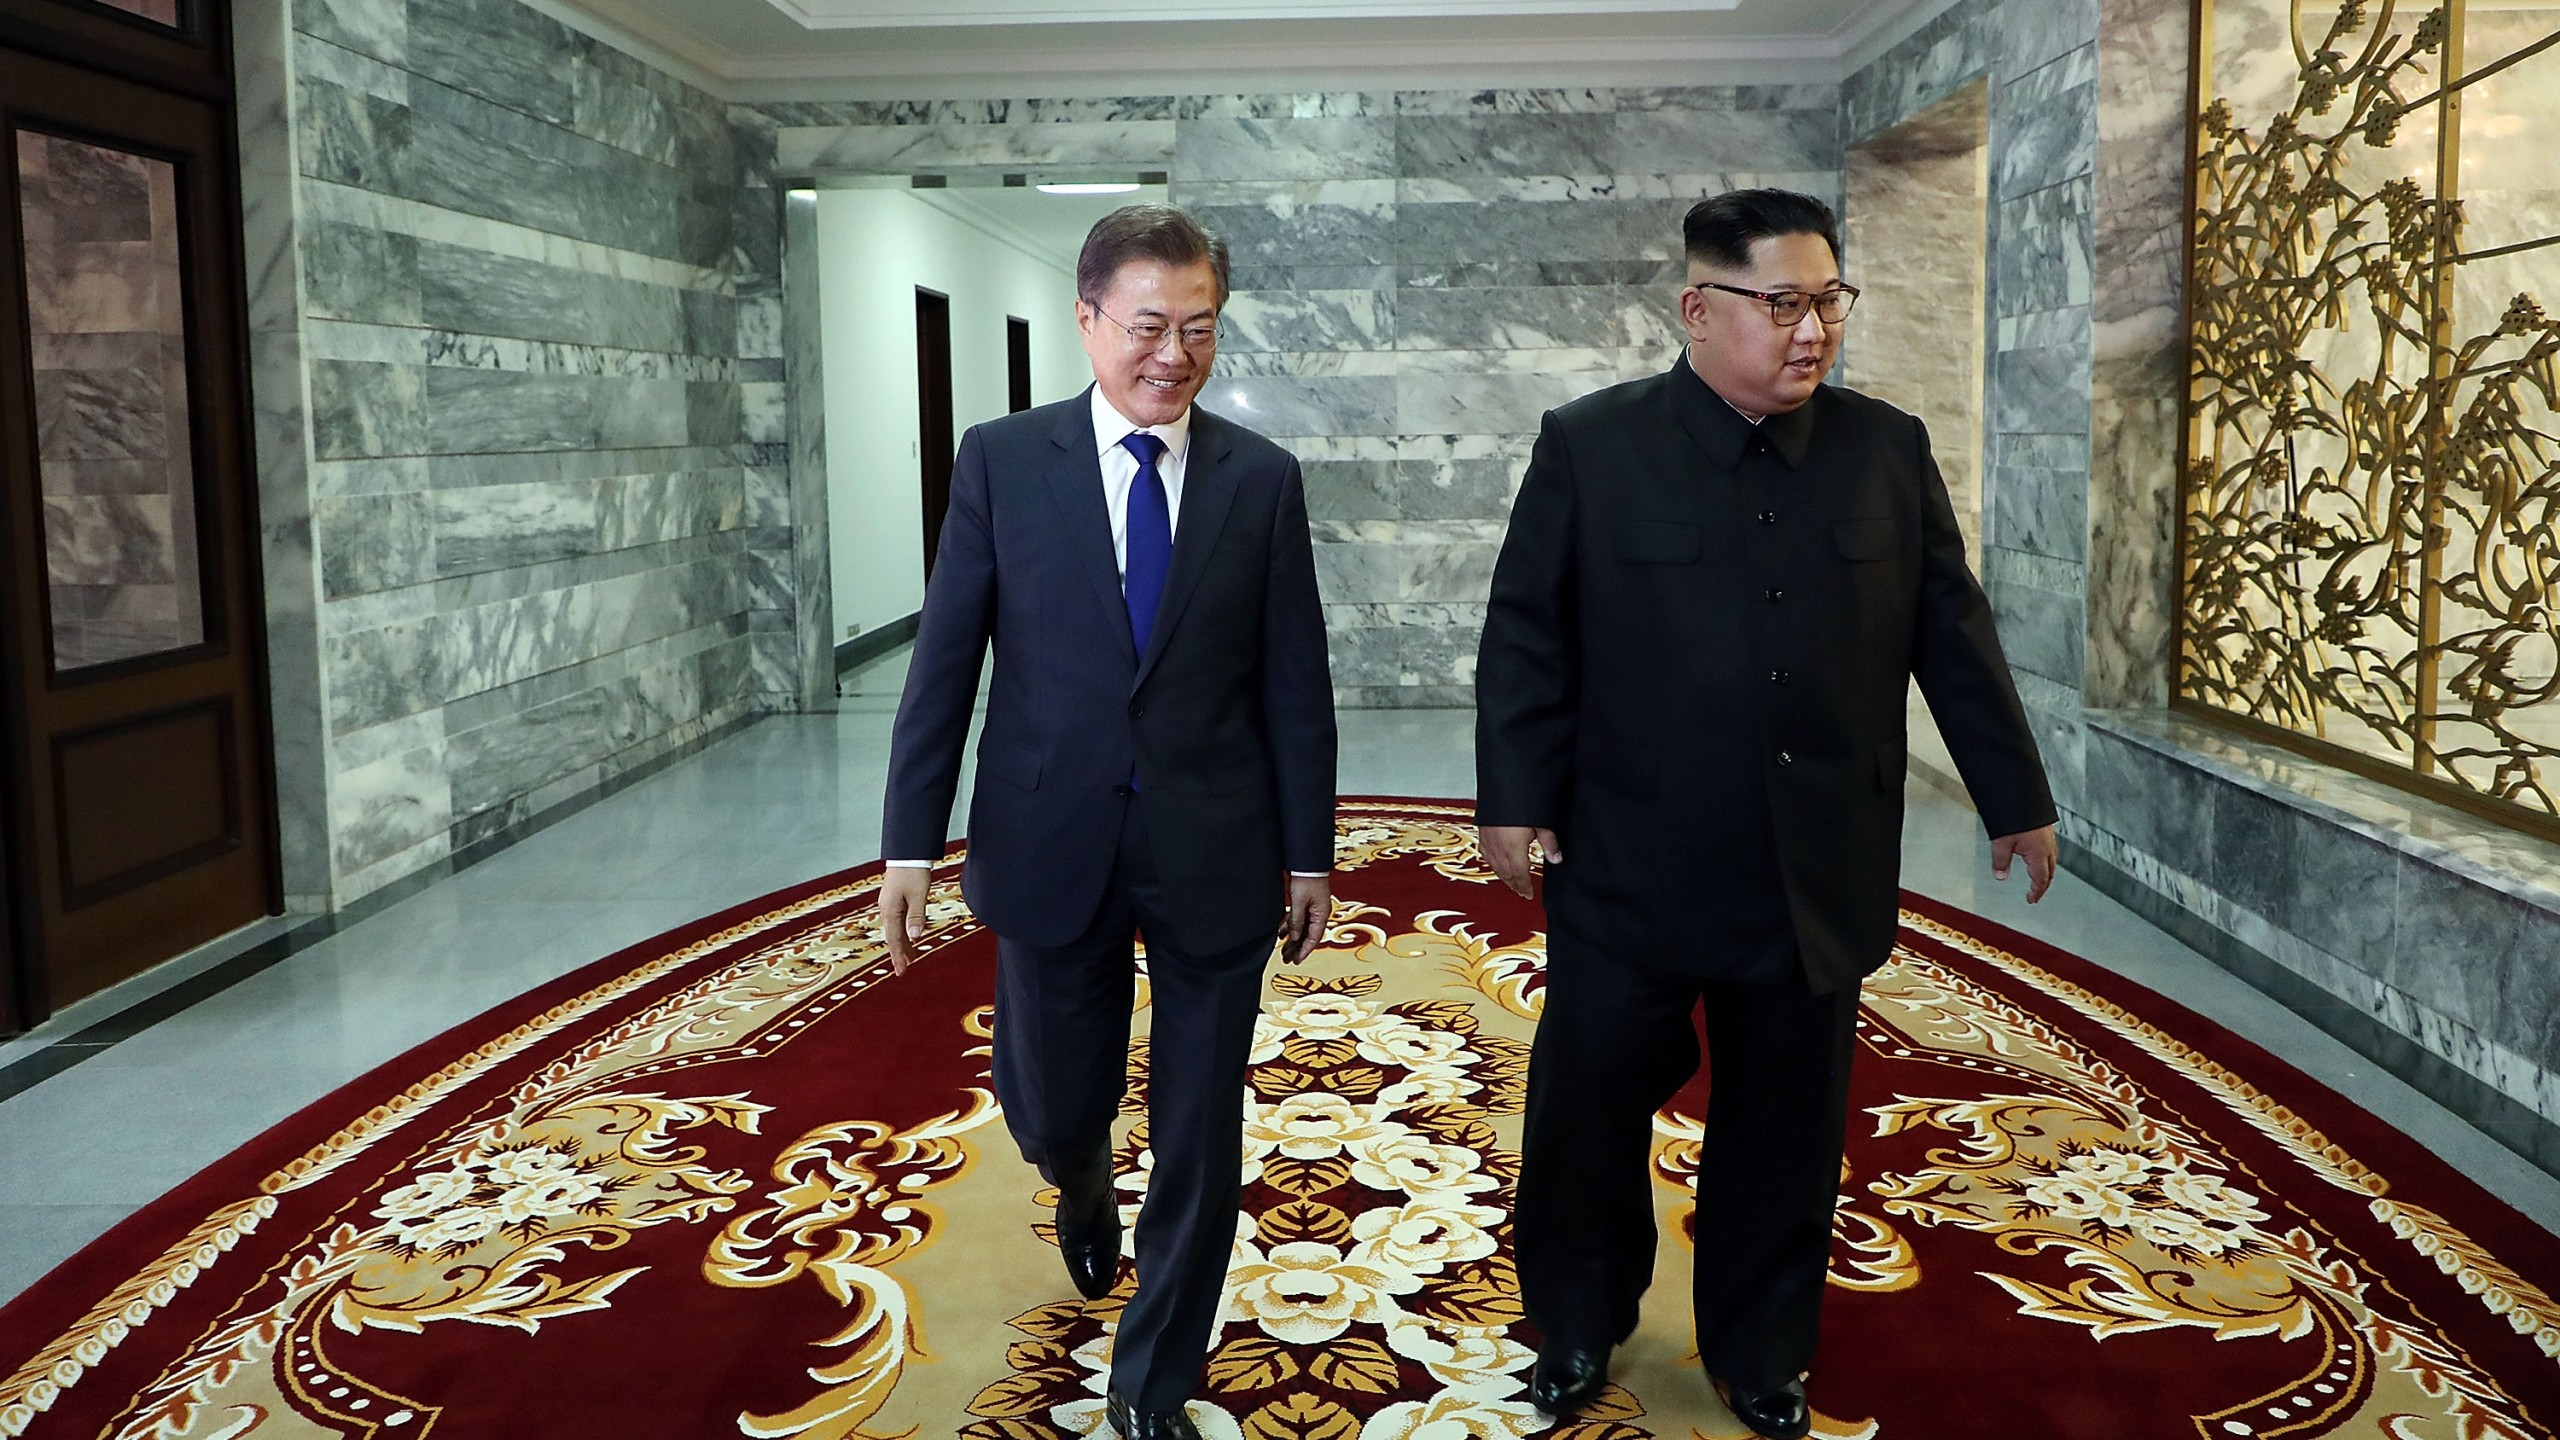 In this handout image provided by South Korean Presidential Blue House, South Korean President Moon Jae-in (left) walks with North Korean leader Kim Jong-un (right) during their meeting on May 26, 2018 in Panmunjom, North Korea. (Credit: South Korean Presidential Blue House via Getty Images)